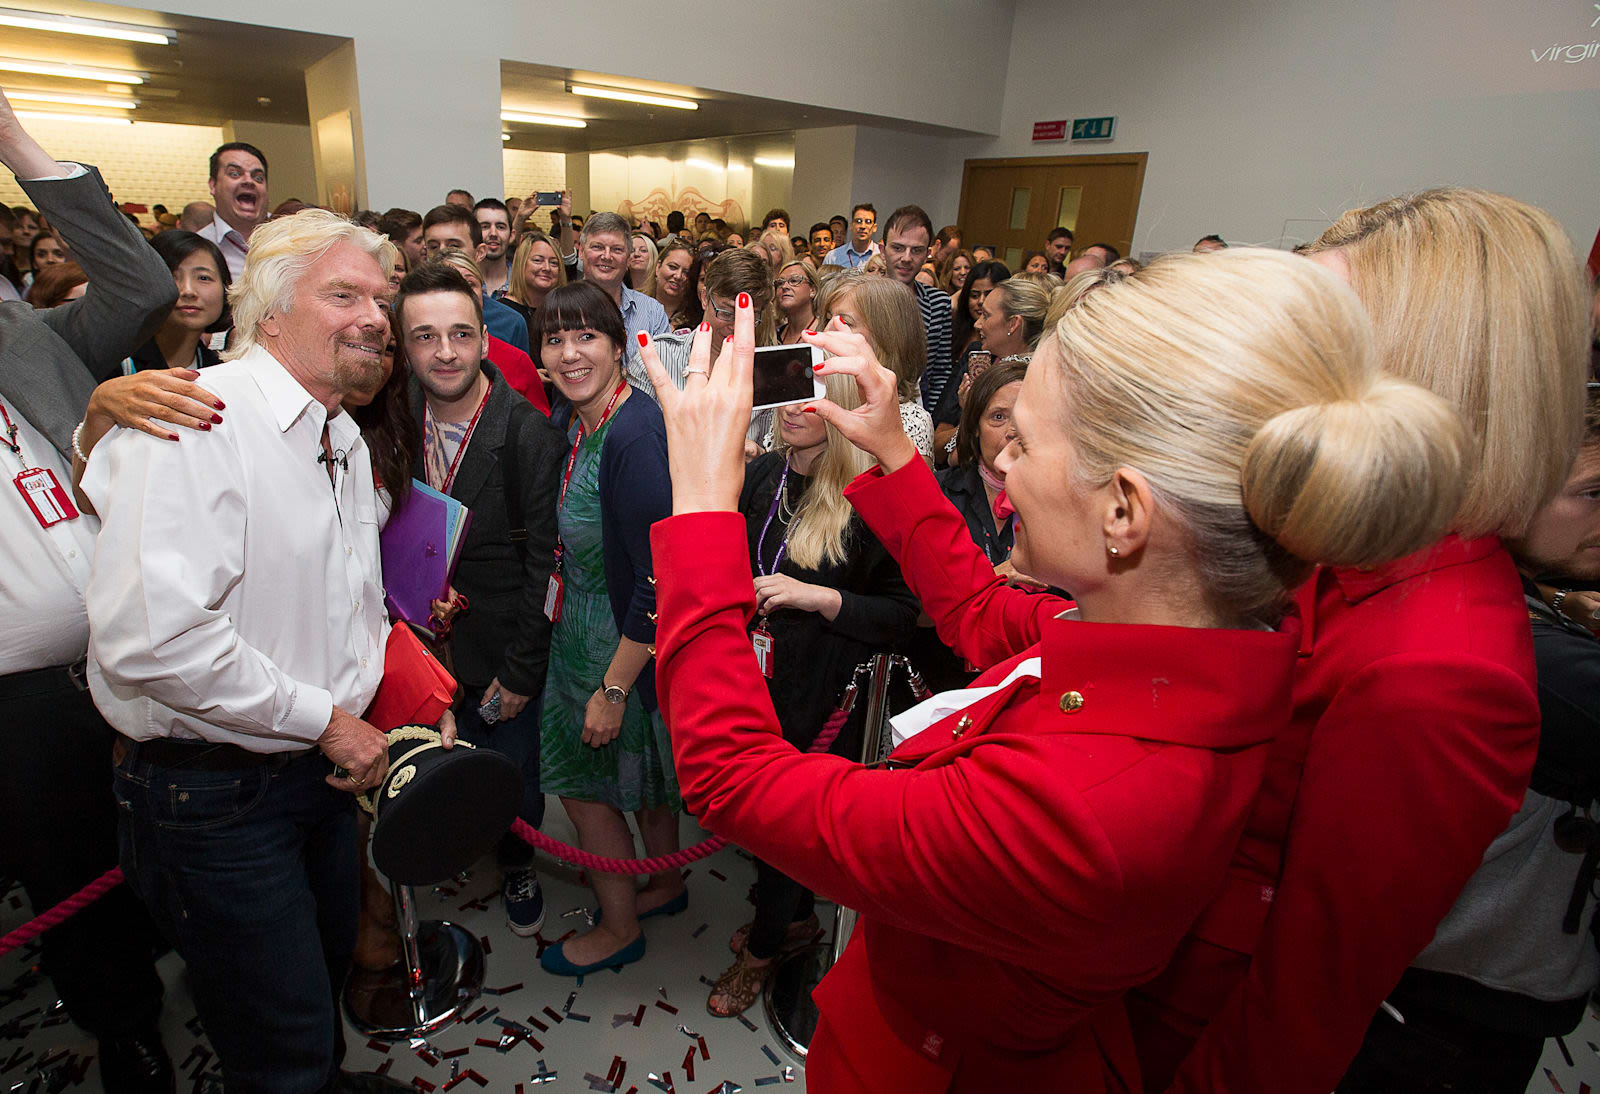 Virgin Atlantic employee taking a picture of Richard Branson and a supporter